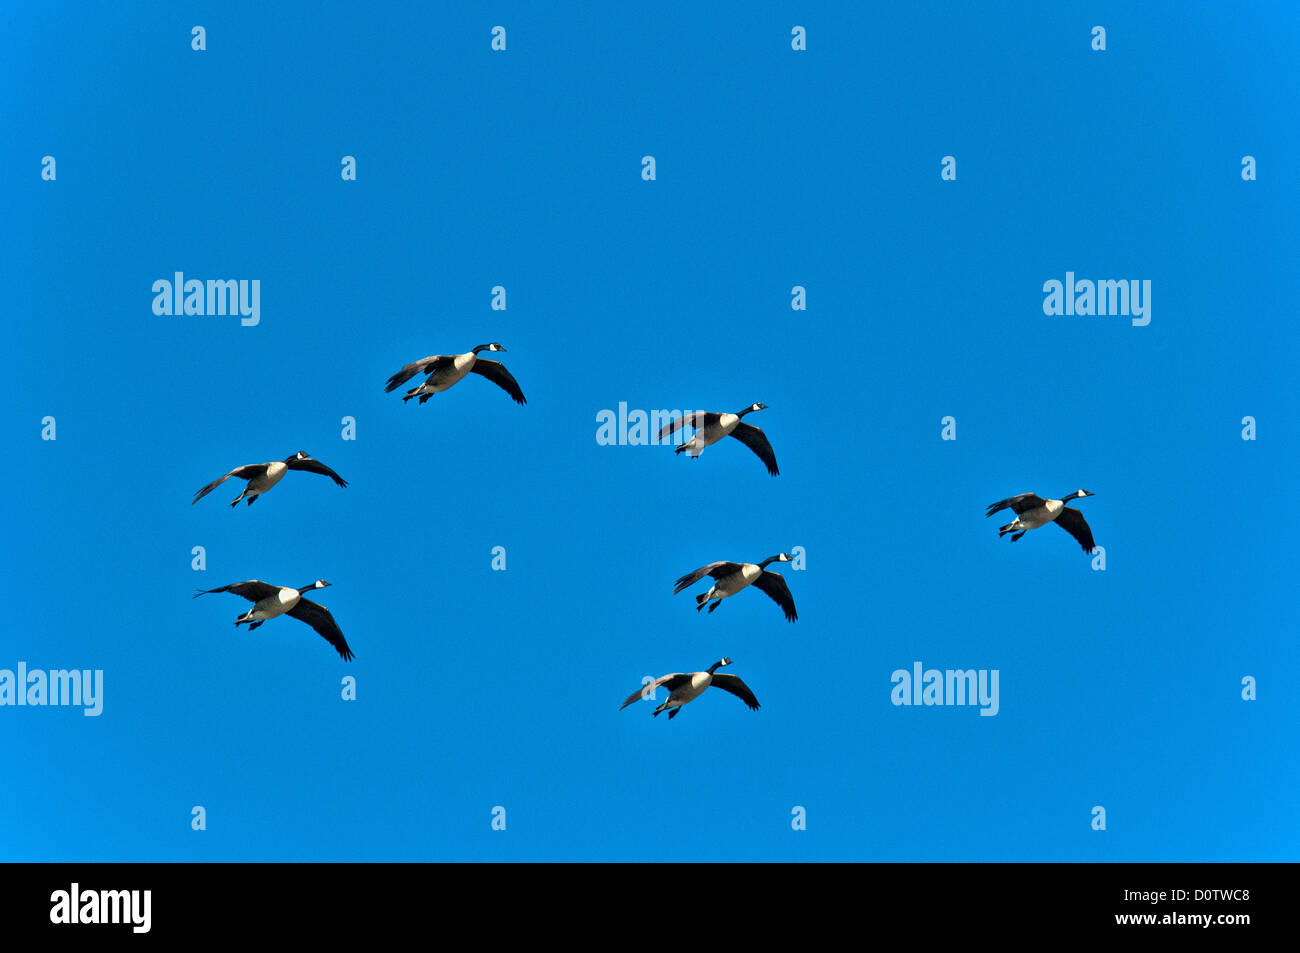 Canada geese, gilbert riparian, preserve, Arizona, USA, Vereinigte Staaten, Amerika, geese, flying, sky - Stock Image